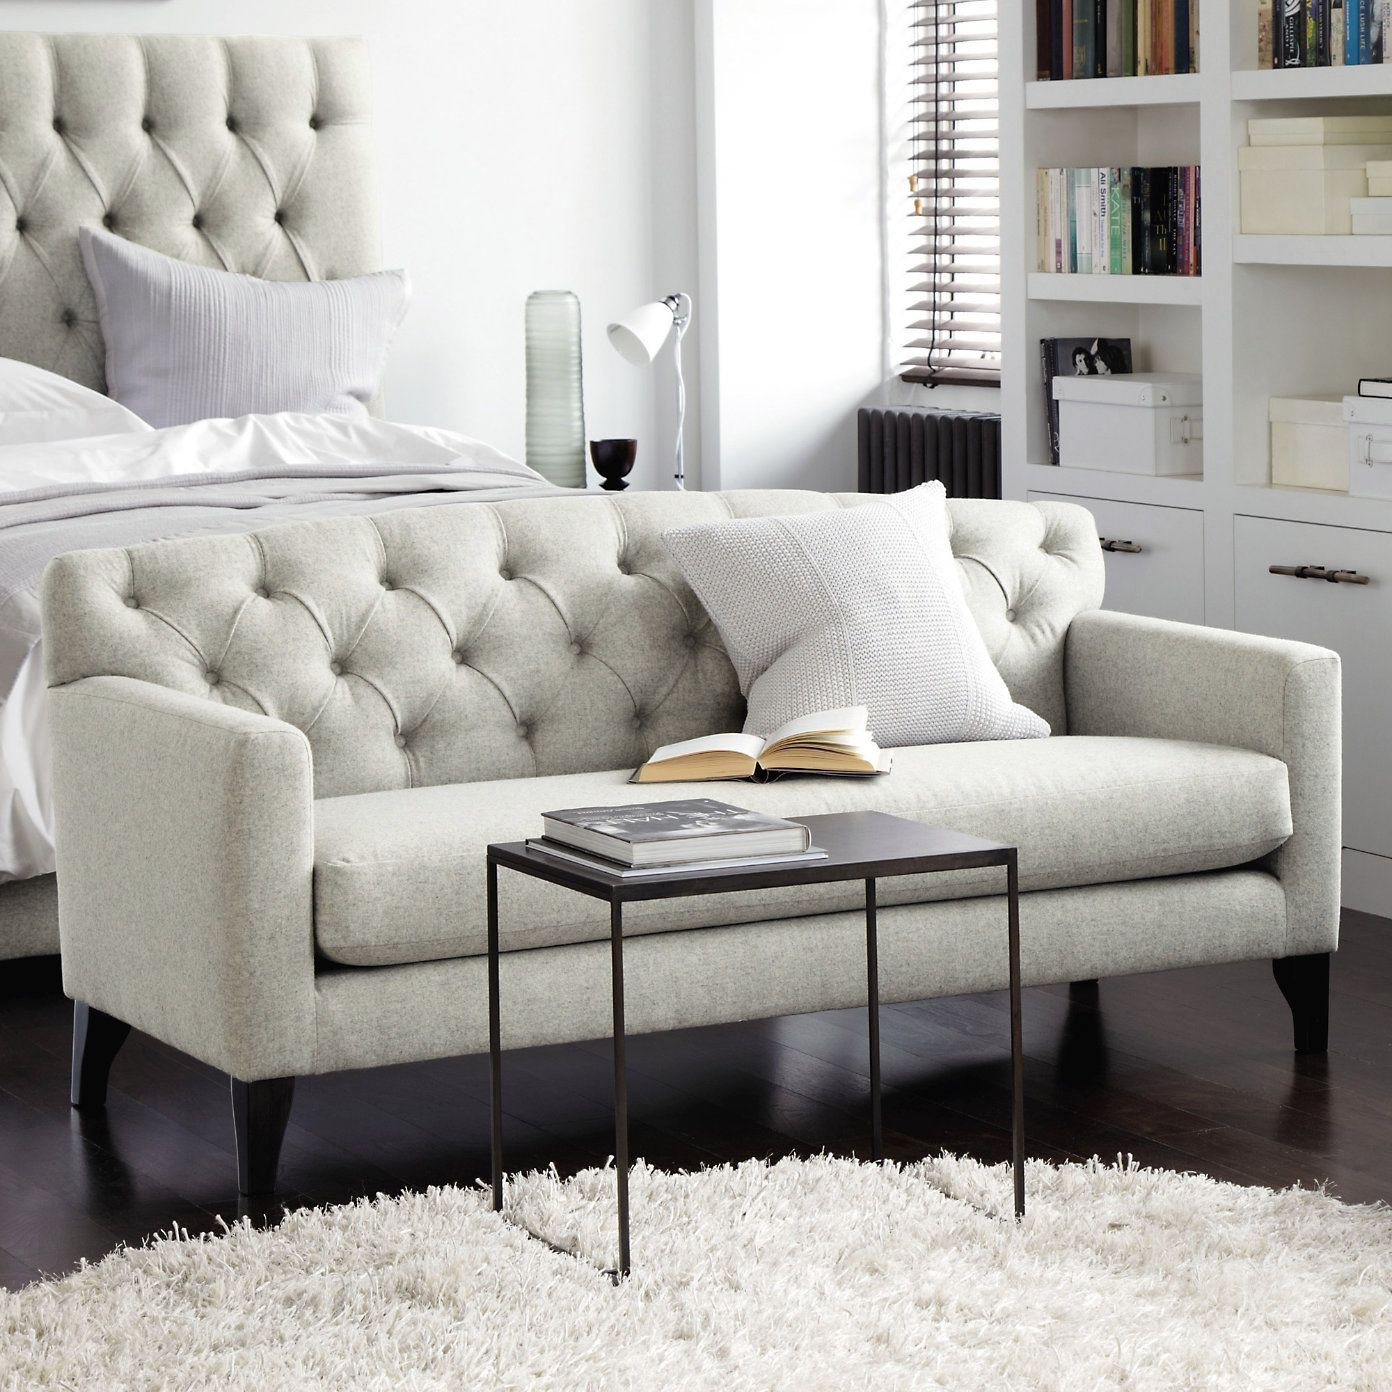 Best Bedroom Sofas Bedroom Couch Chair Hertscreation Thesofa With Pictures